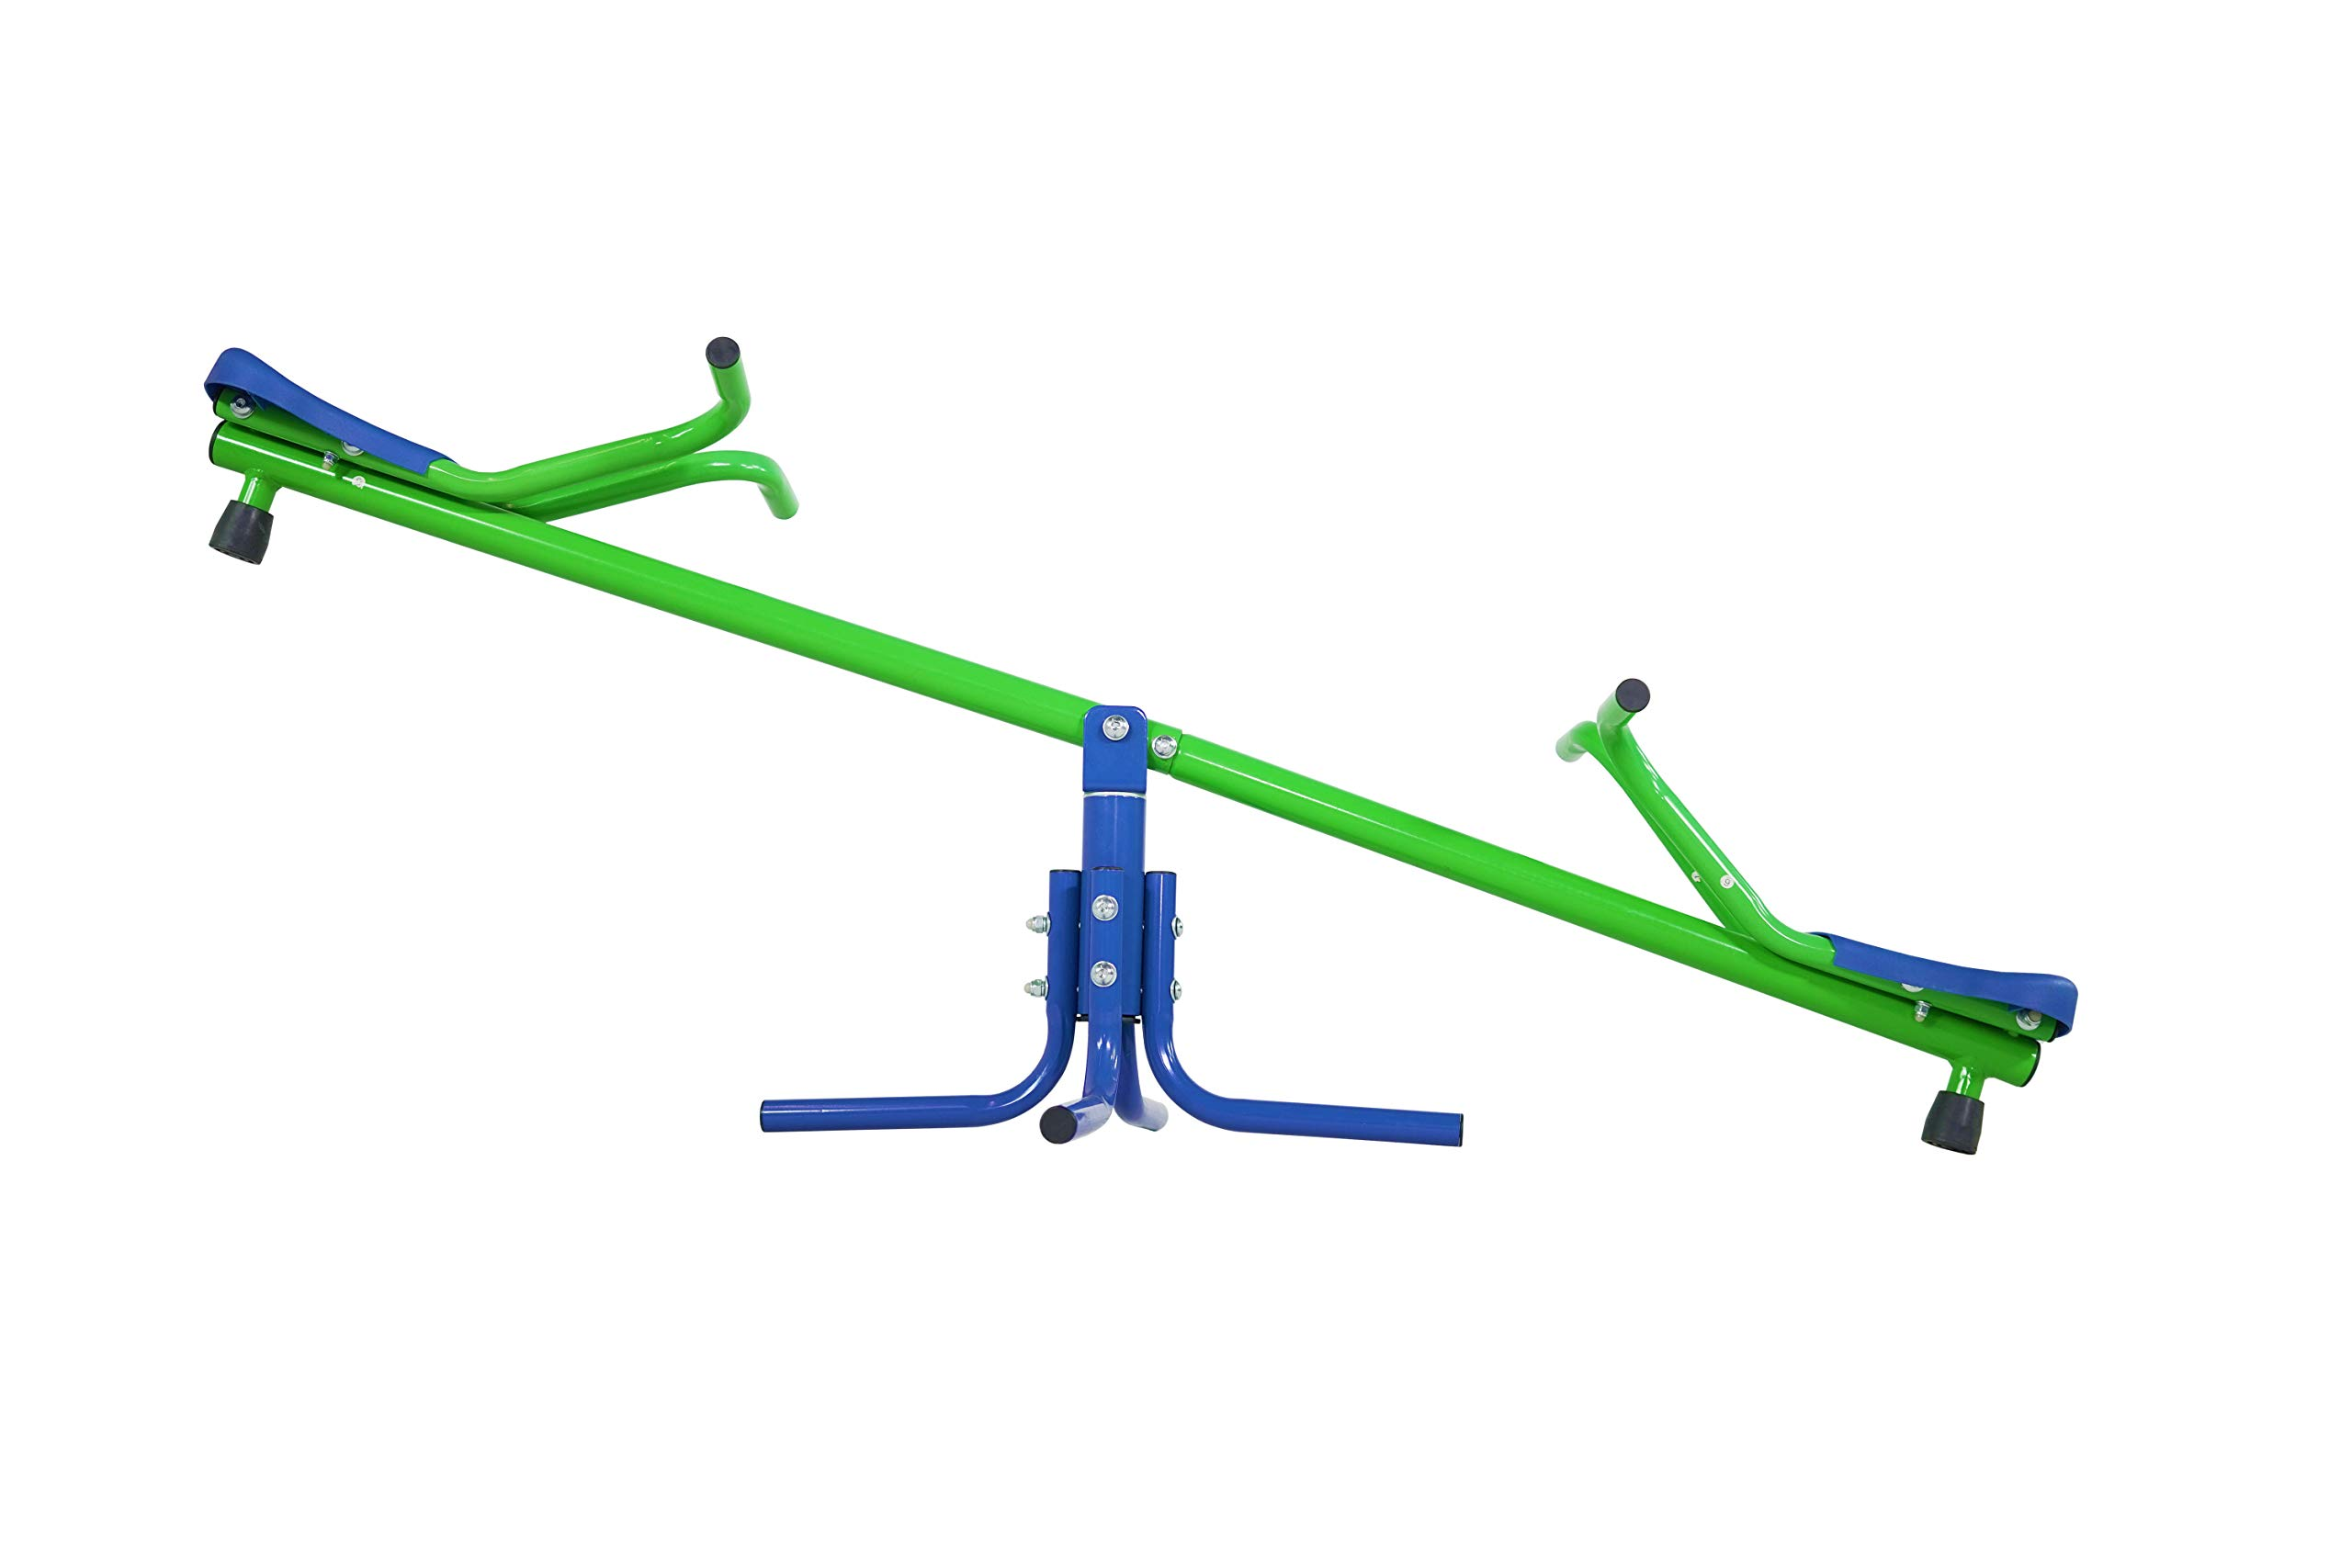 Sportspower Junior Teeter Totter - Childrens Indoor and Outdoor Heavy-Duty Spinning Seesaw by Sportspower